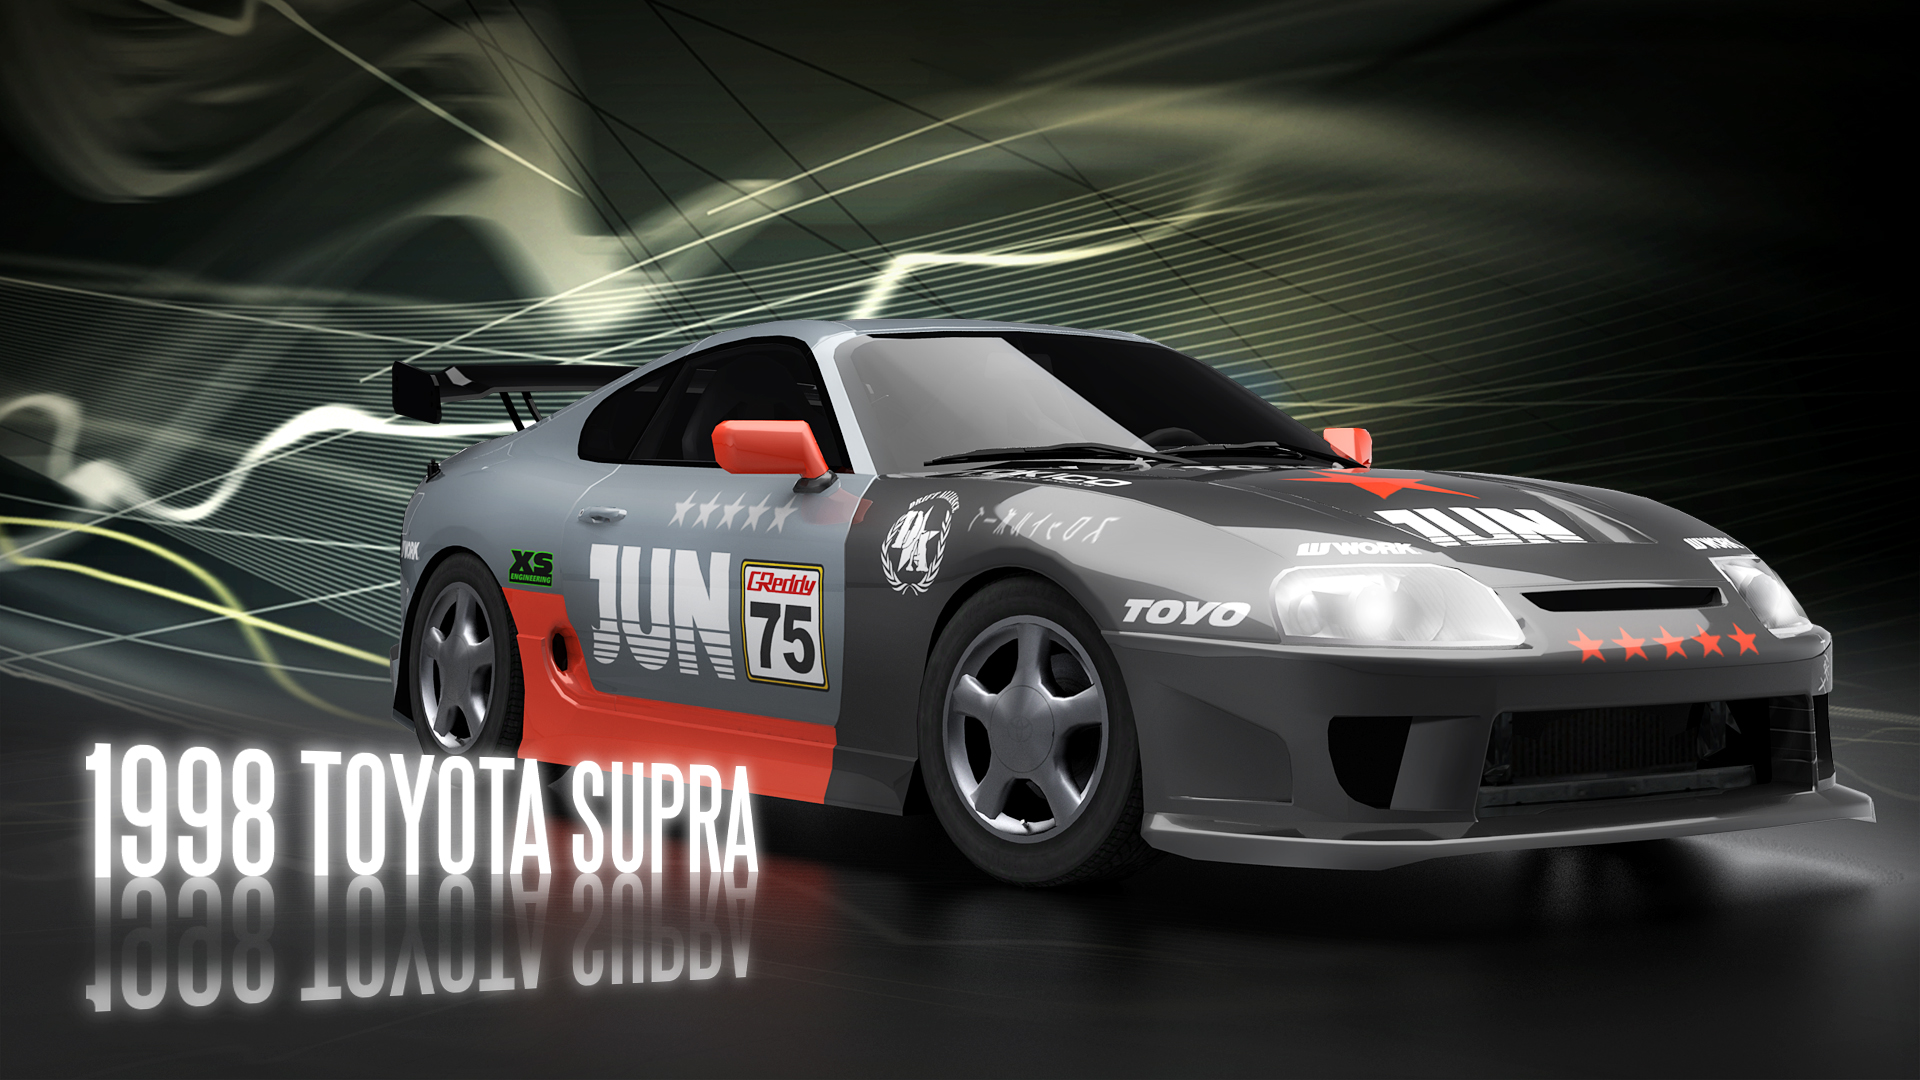 Toyota Supra desktop wallpaper Supra wallpapers 1920x1080